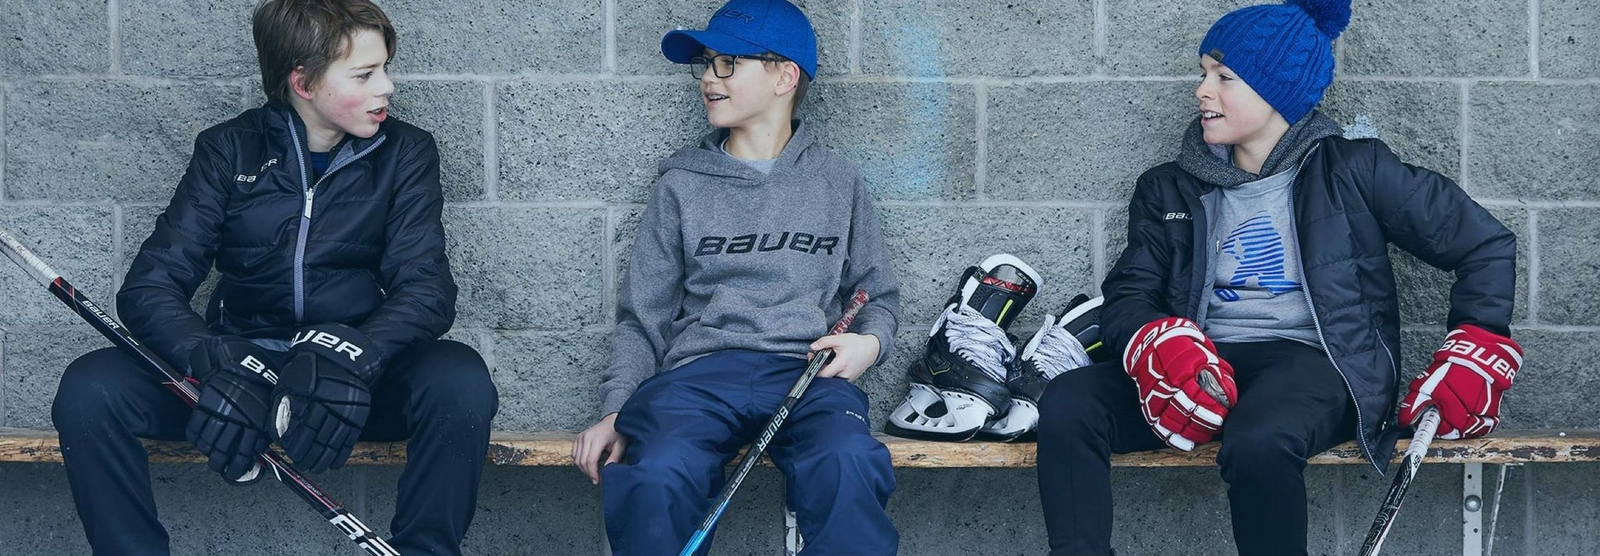 hockey kids wearing Bauer apparel.